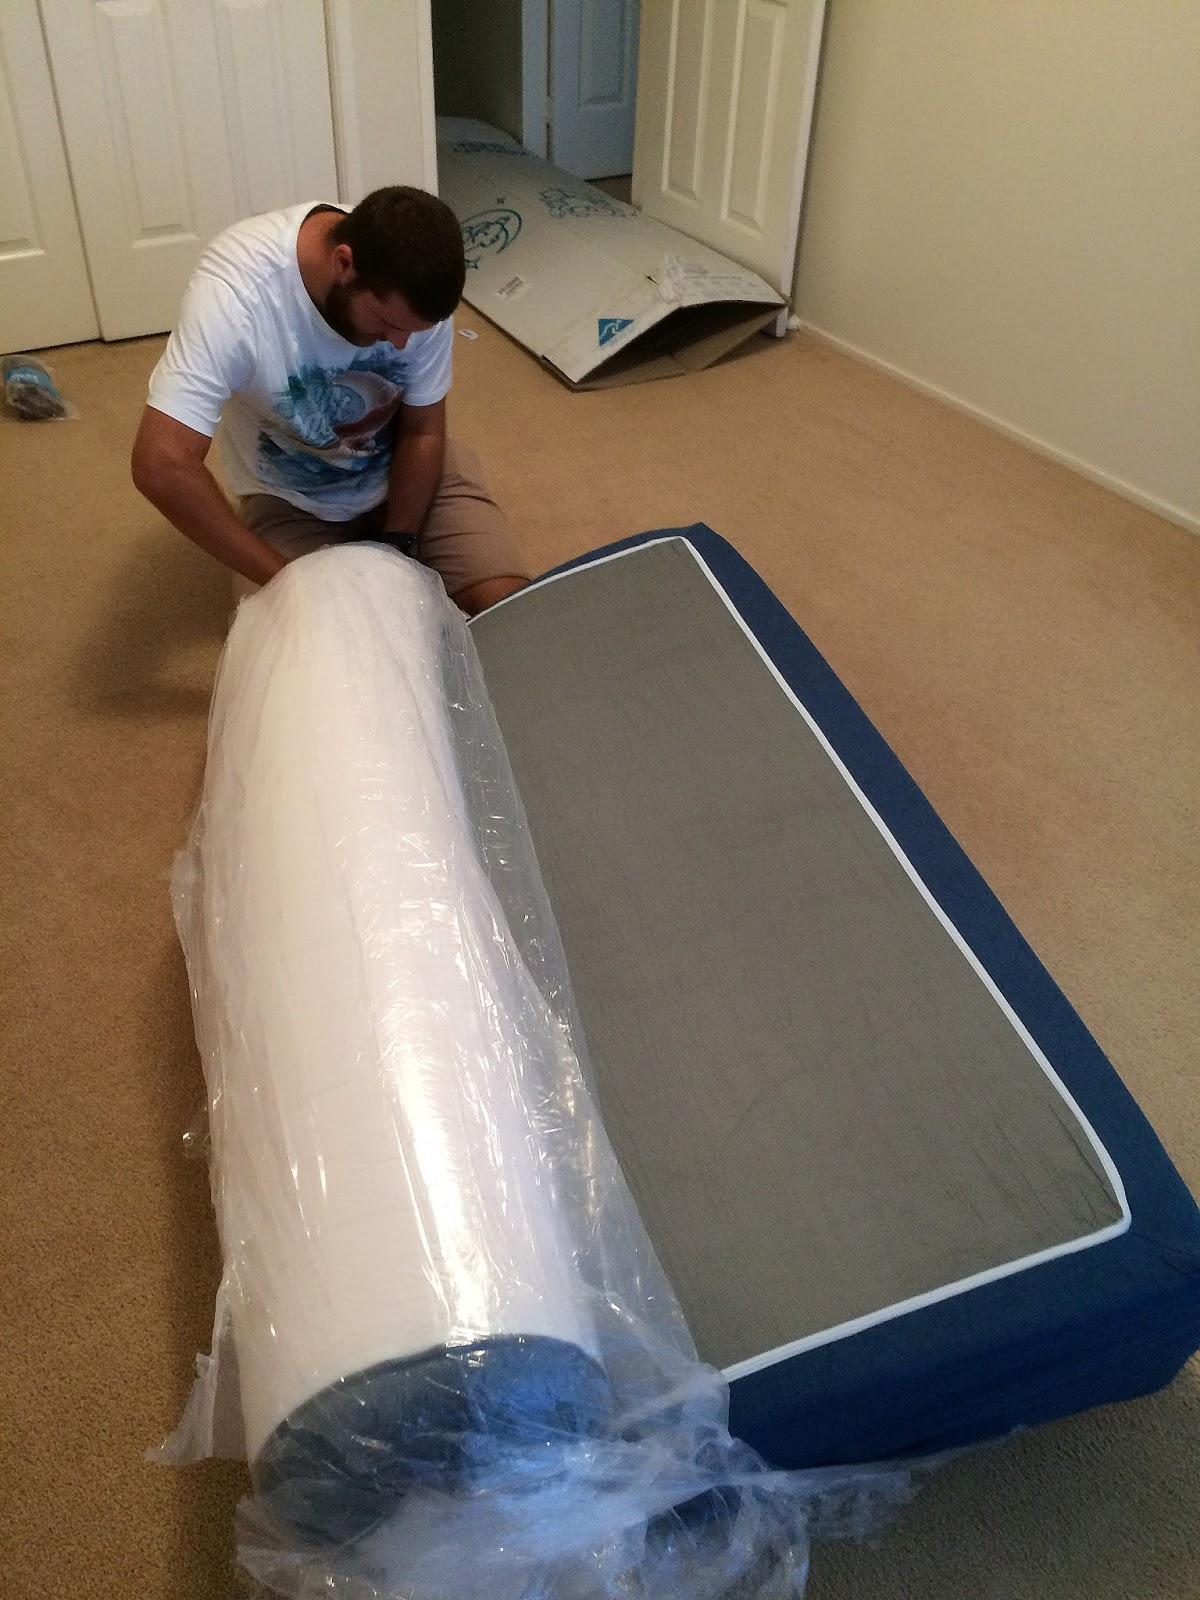 Unwrapping Koala Mattress